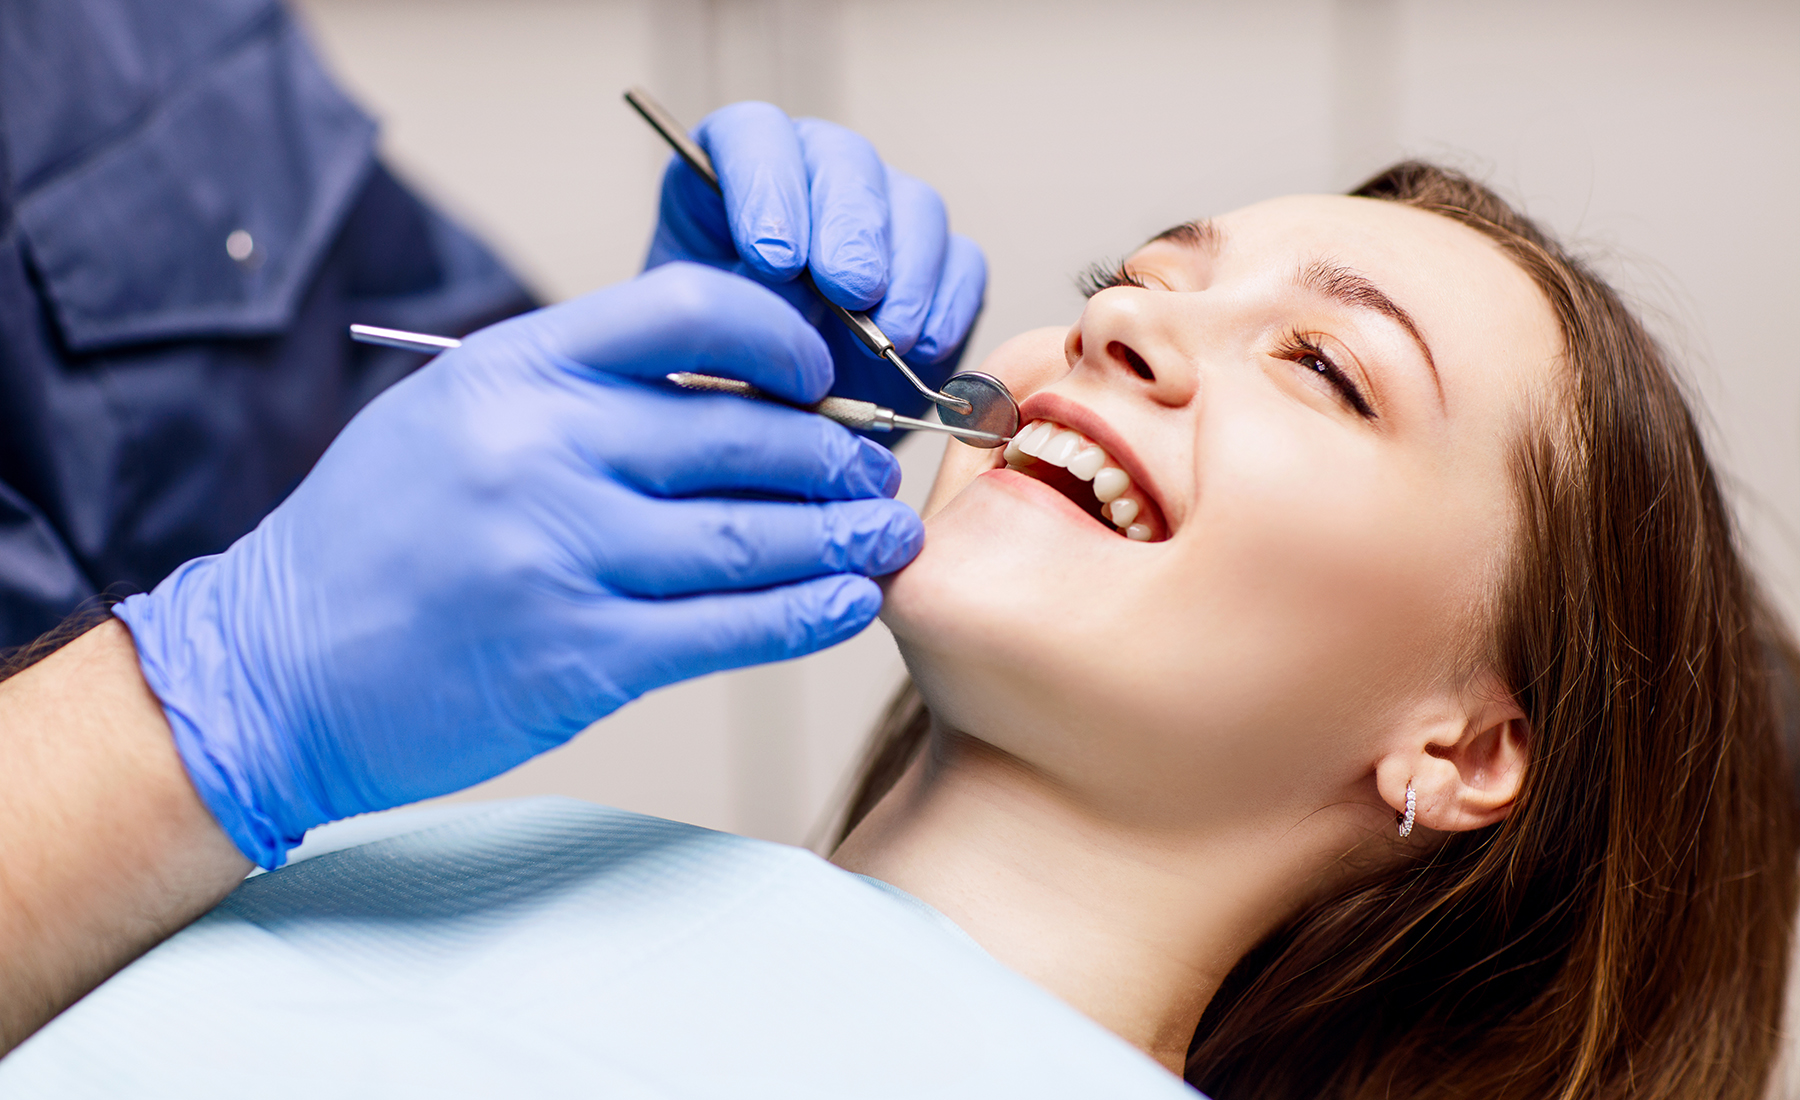 Dentist,Check-up,Teeth,To,Young,Woman,Patient,In,Clinic.